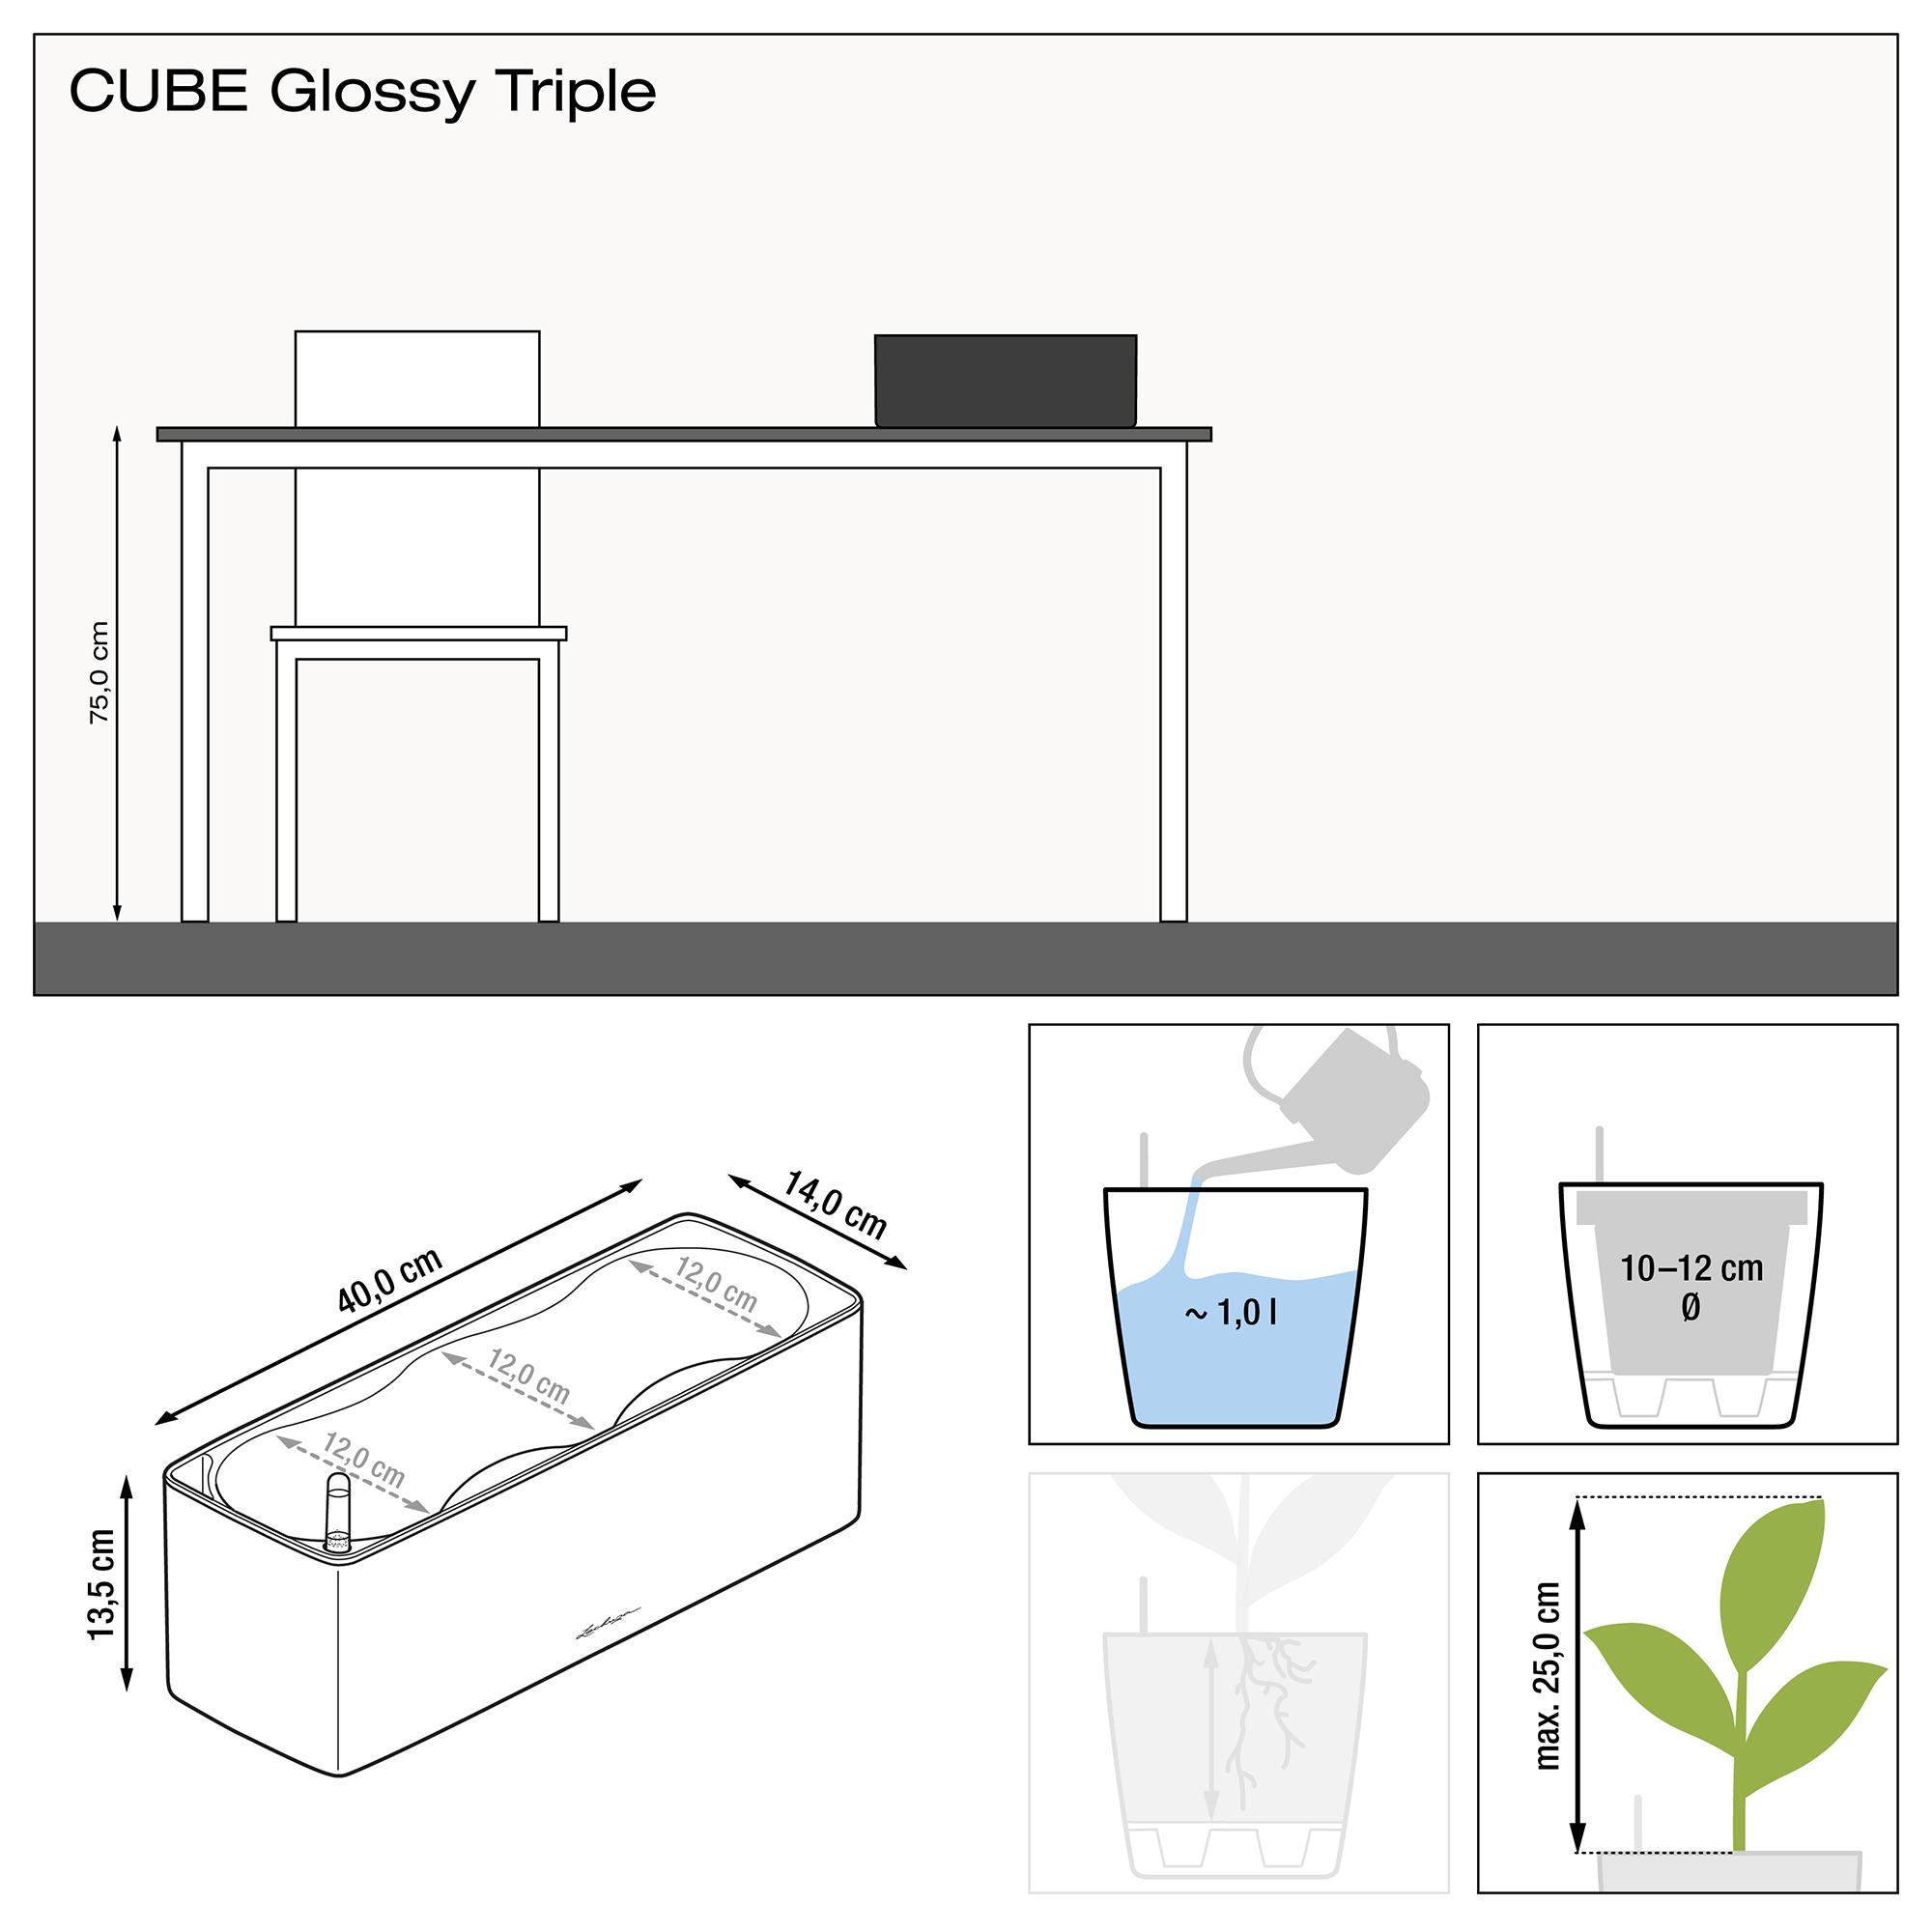 le_cube-glossy-triple_product_addi_nz